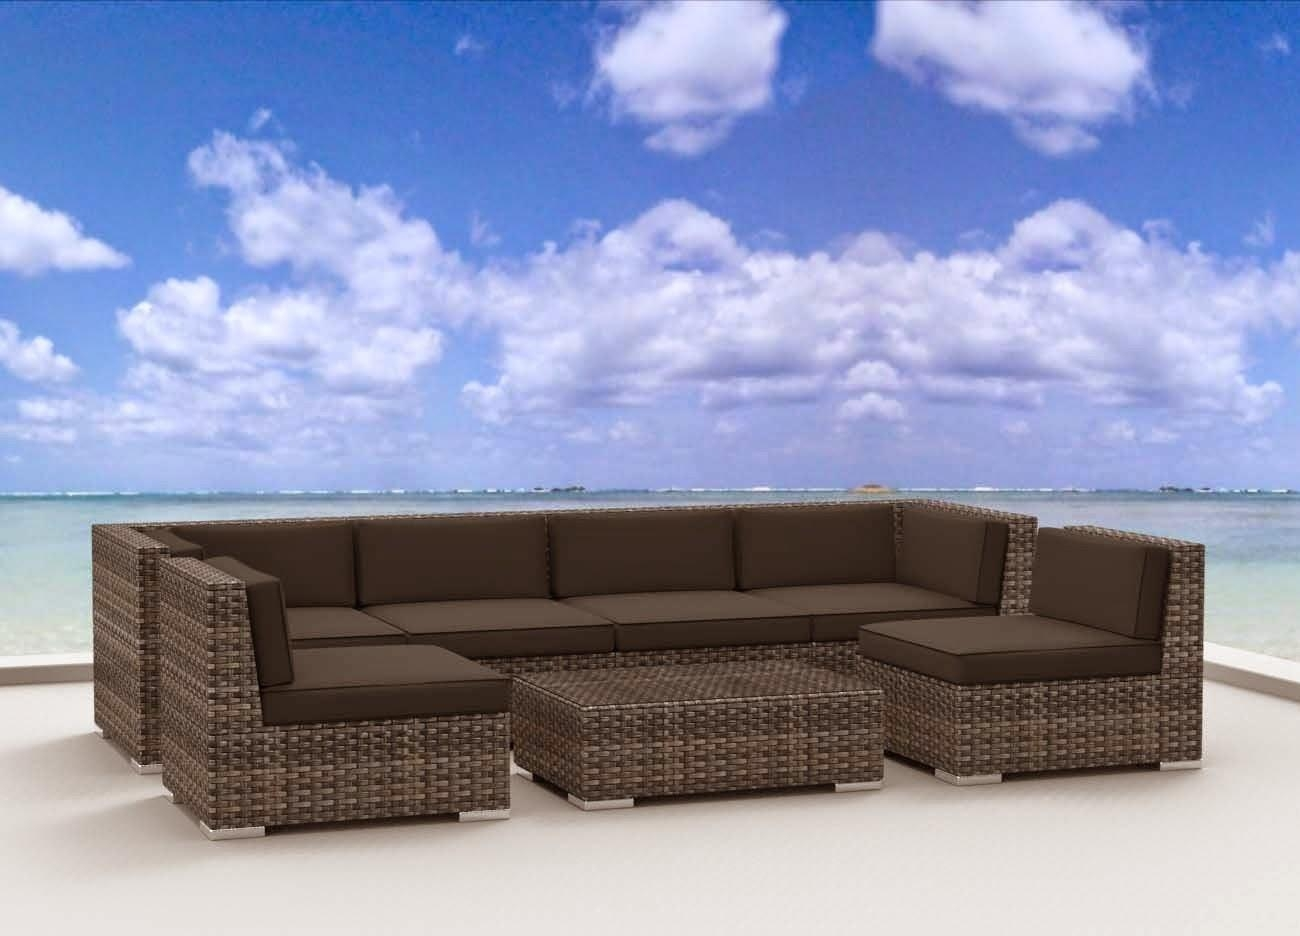 Urban Furnishing Modern Outdoor Backyard Wicker Rattan Patio inside Modern Rattan Sofas